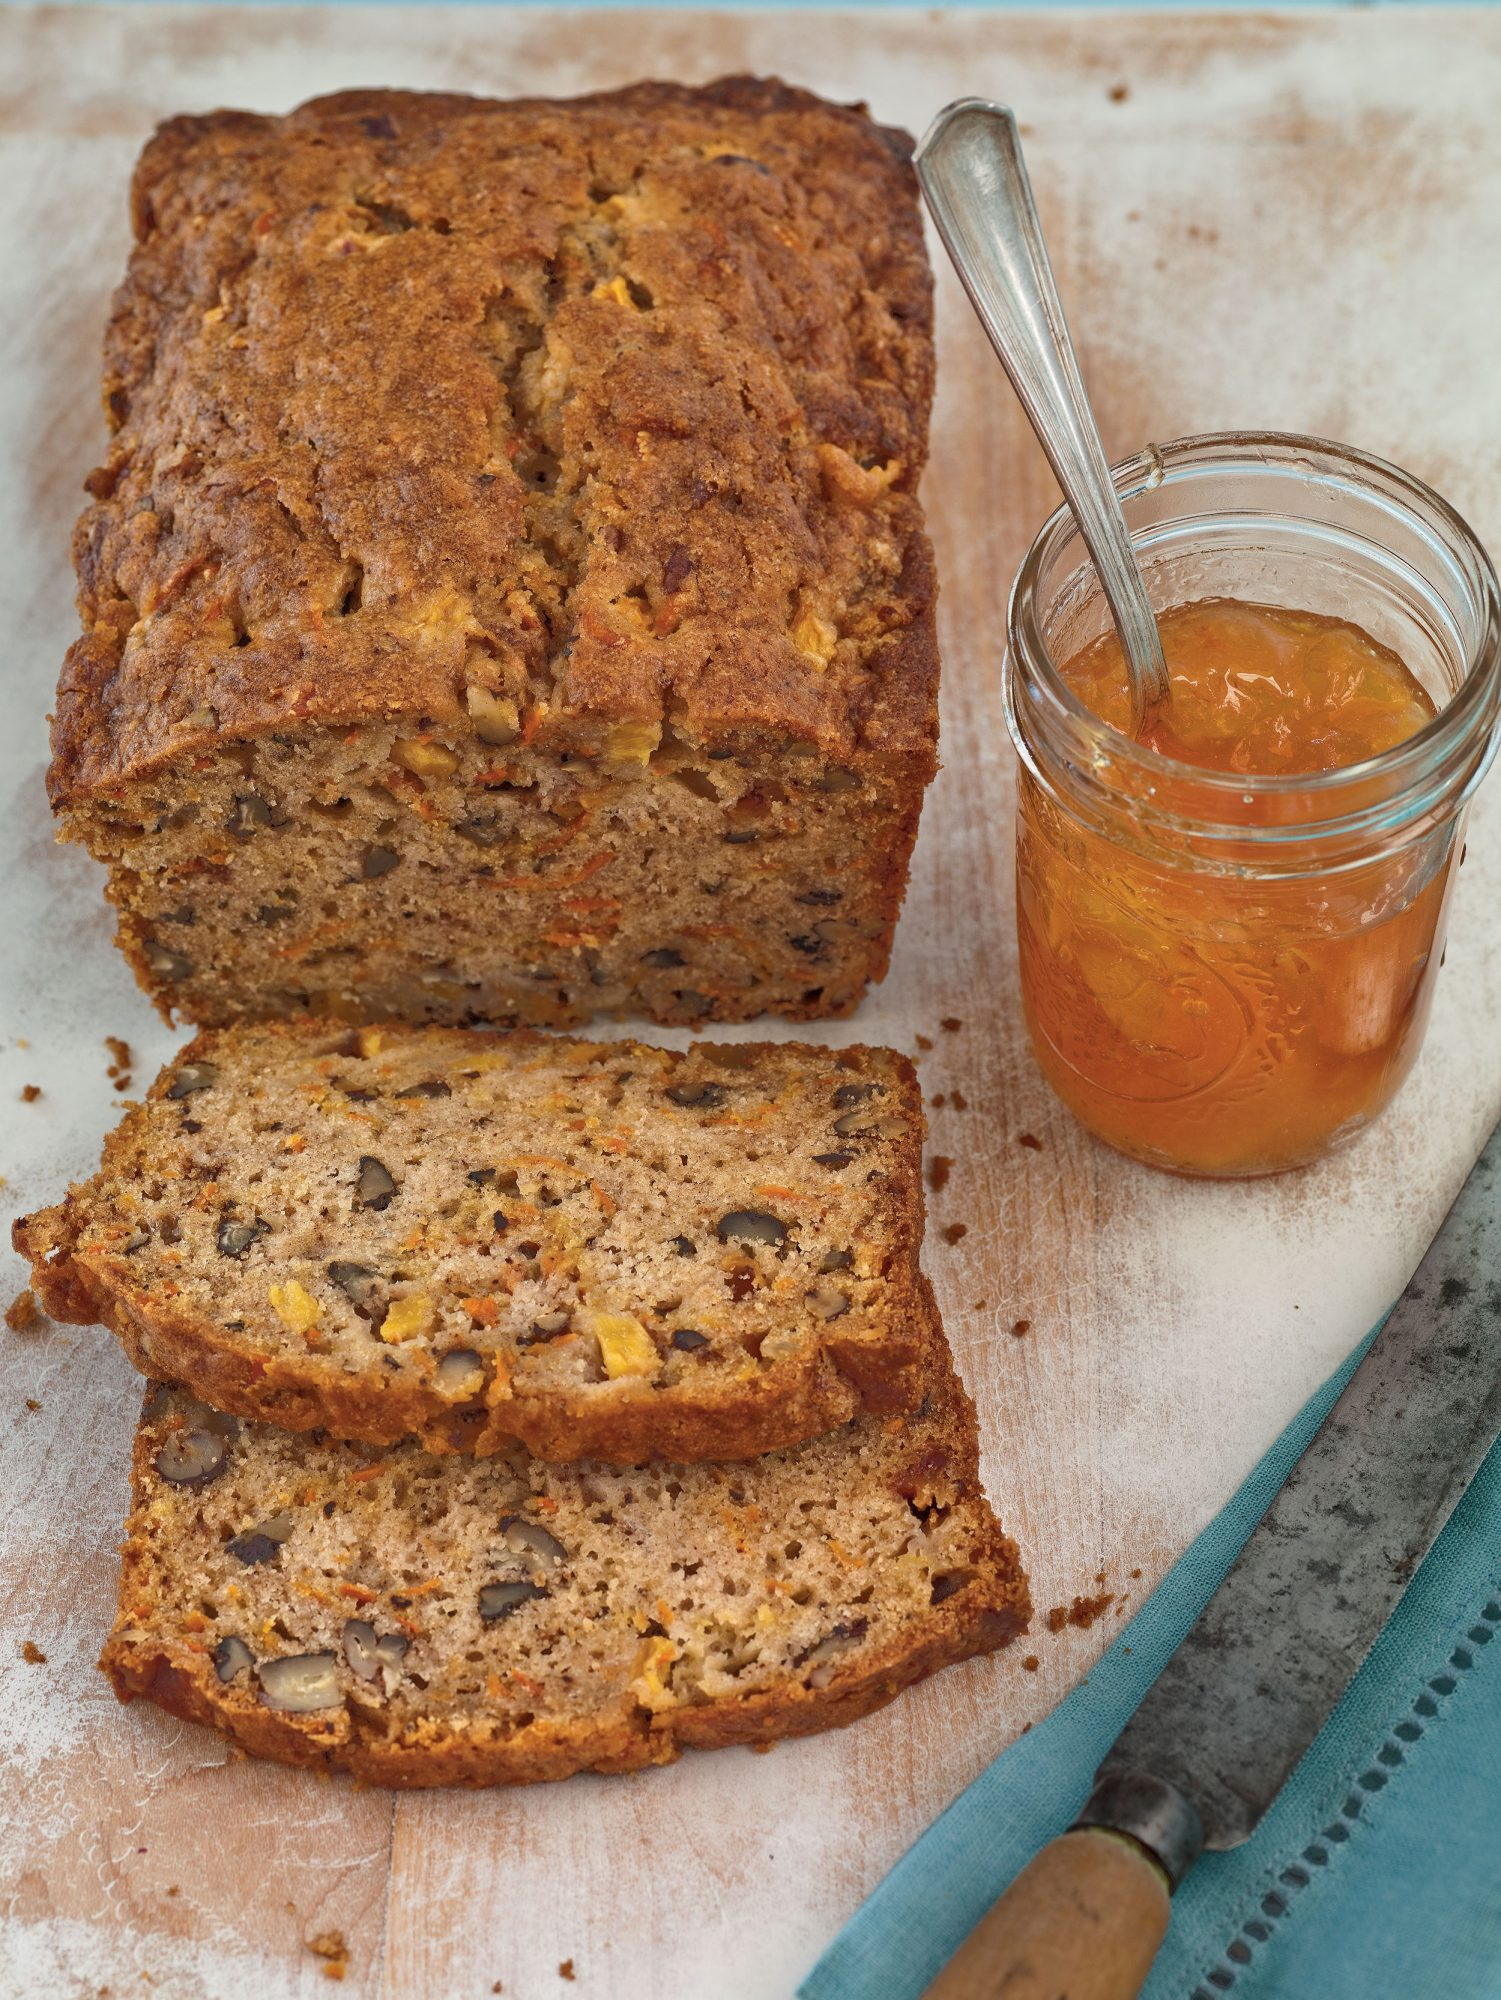 Spiced Peach-Carrot Bread